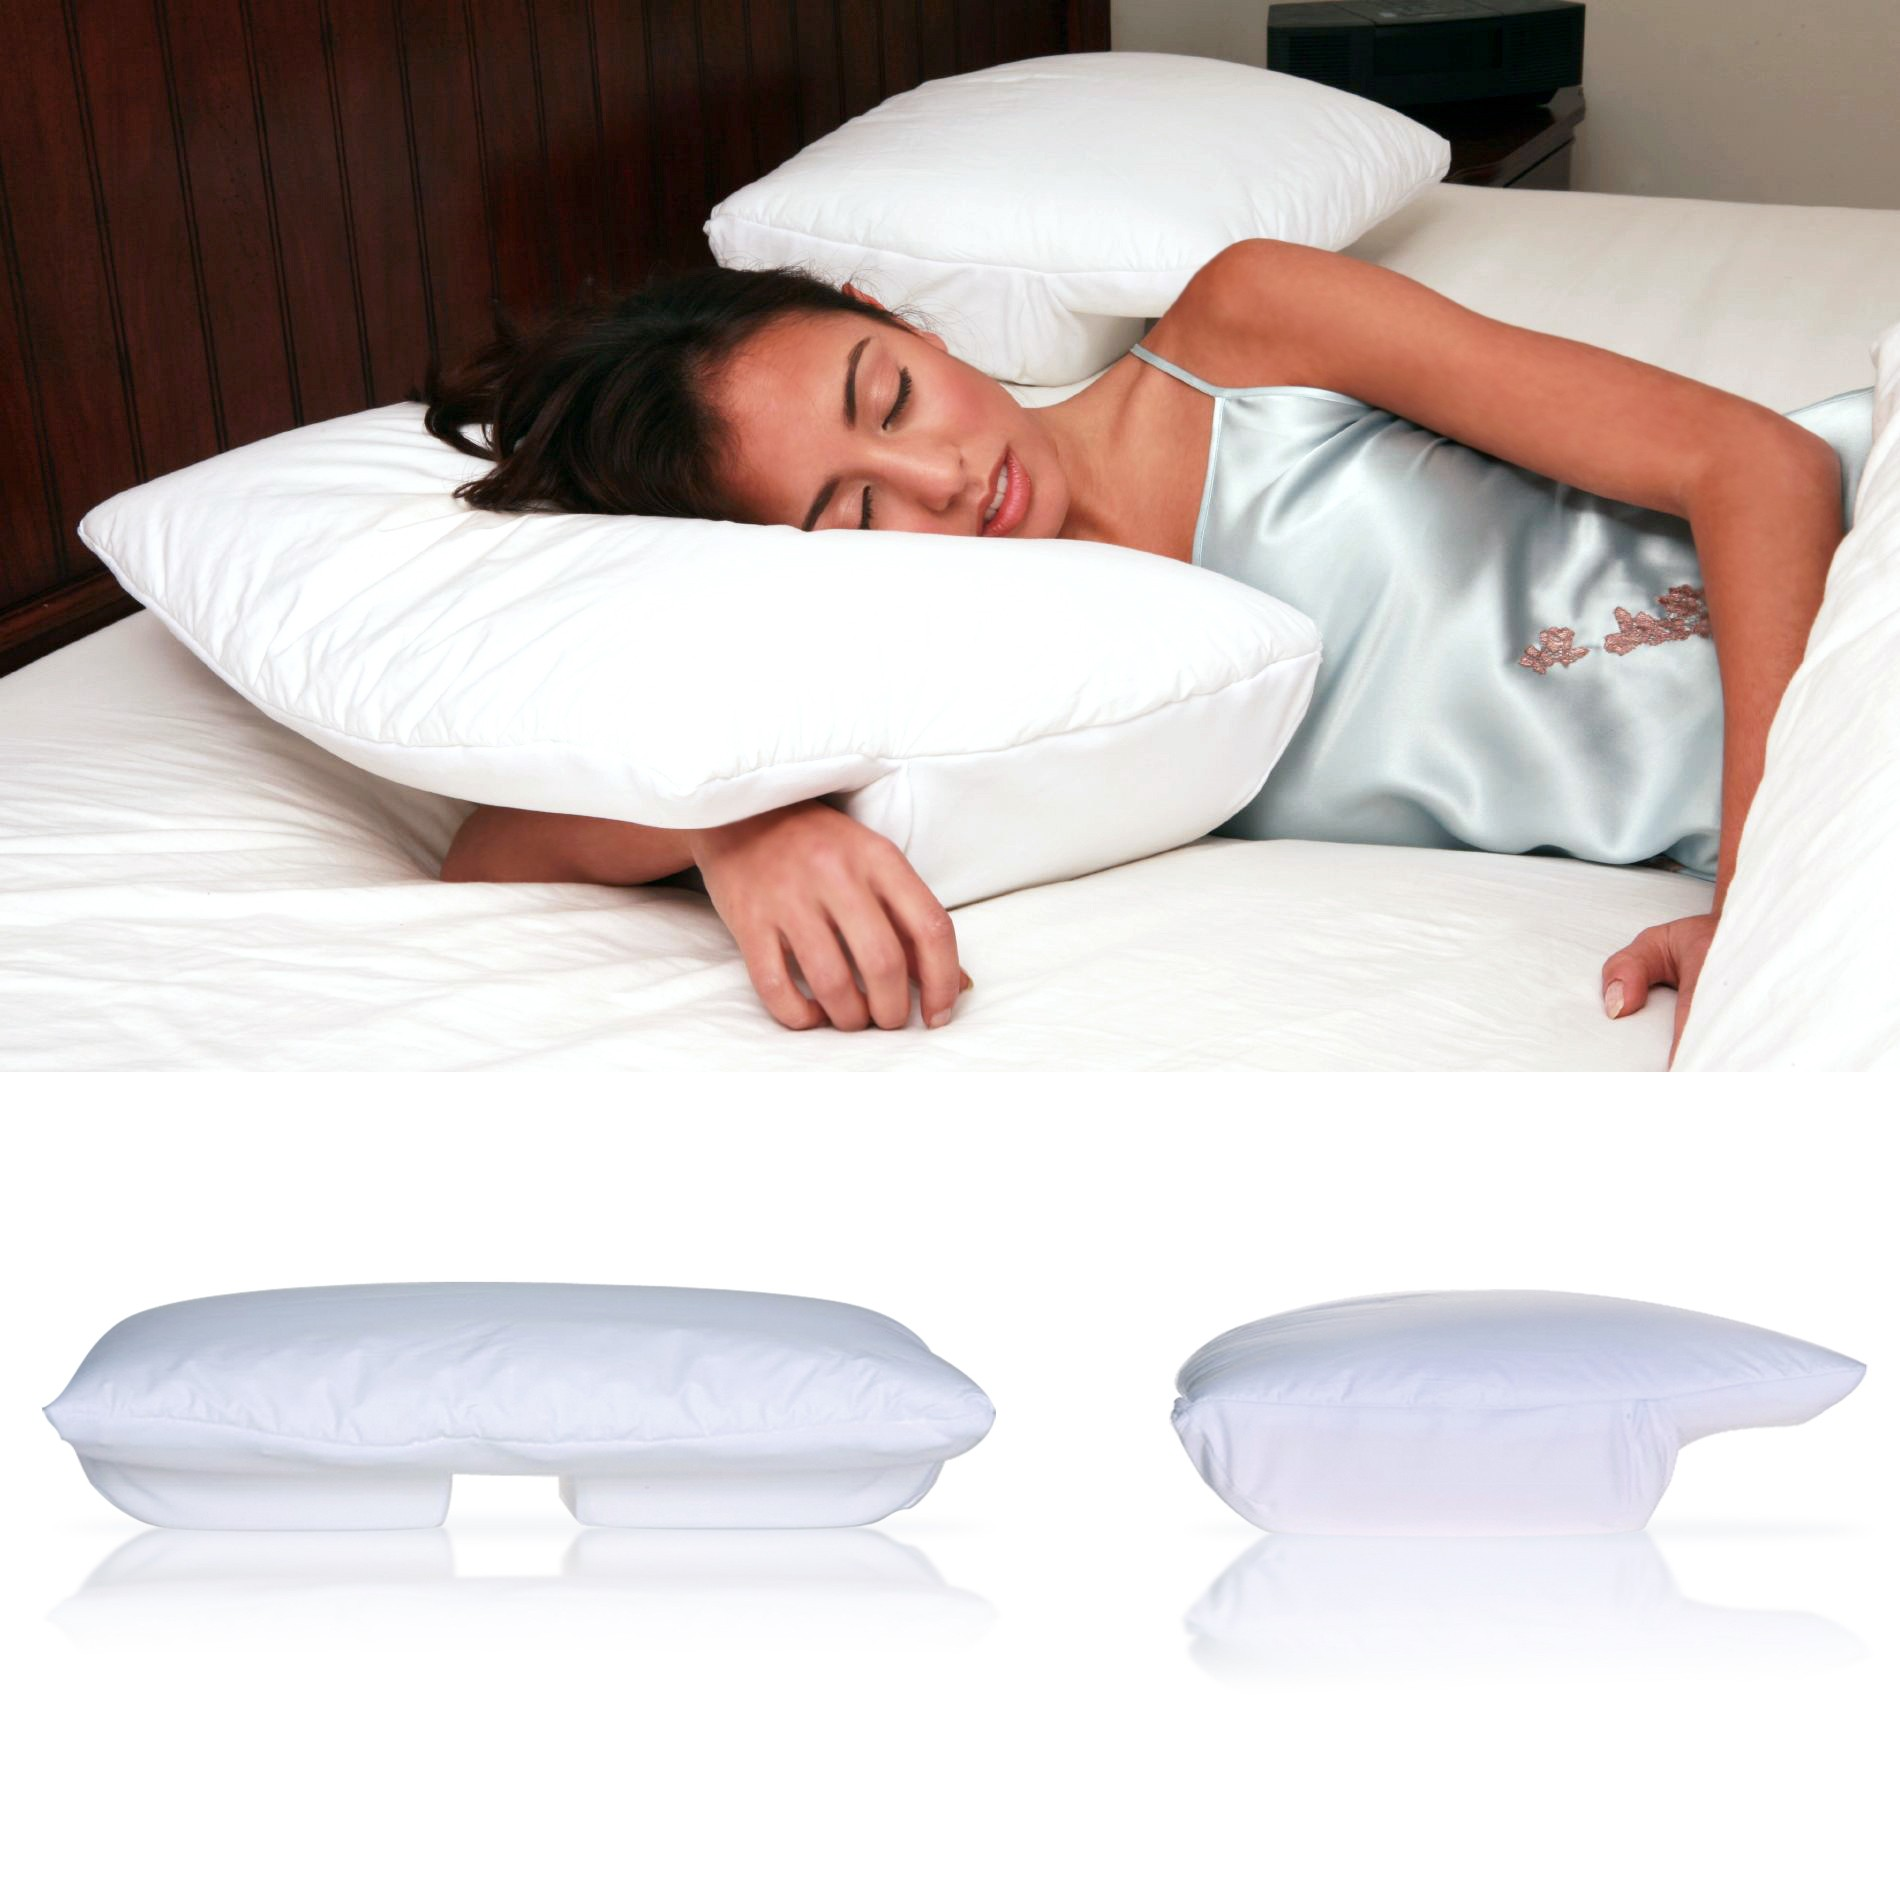 better sleep pillow memory foam 3 5 inch thick foam patented arm tunnel design improves hand and arm circulation neck pain relief perfect side